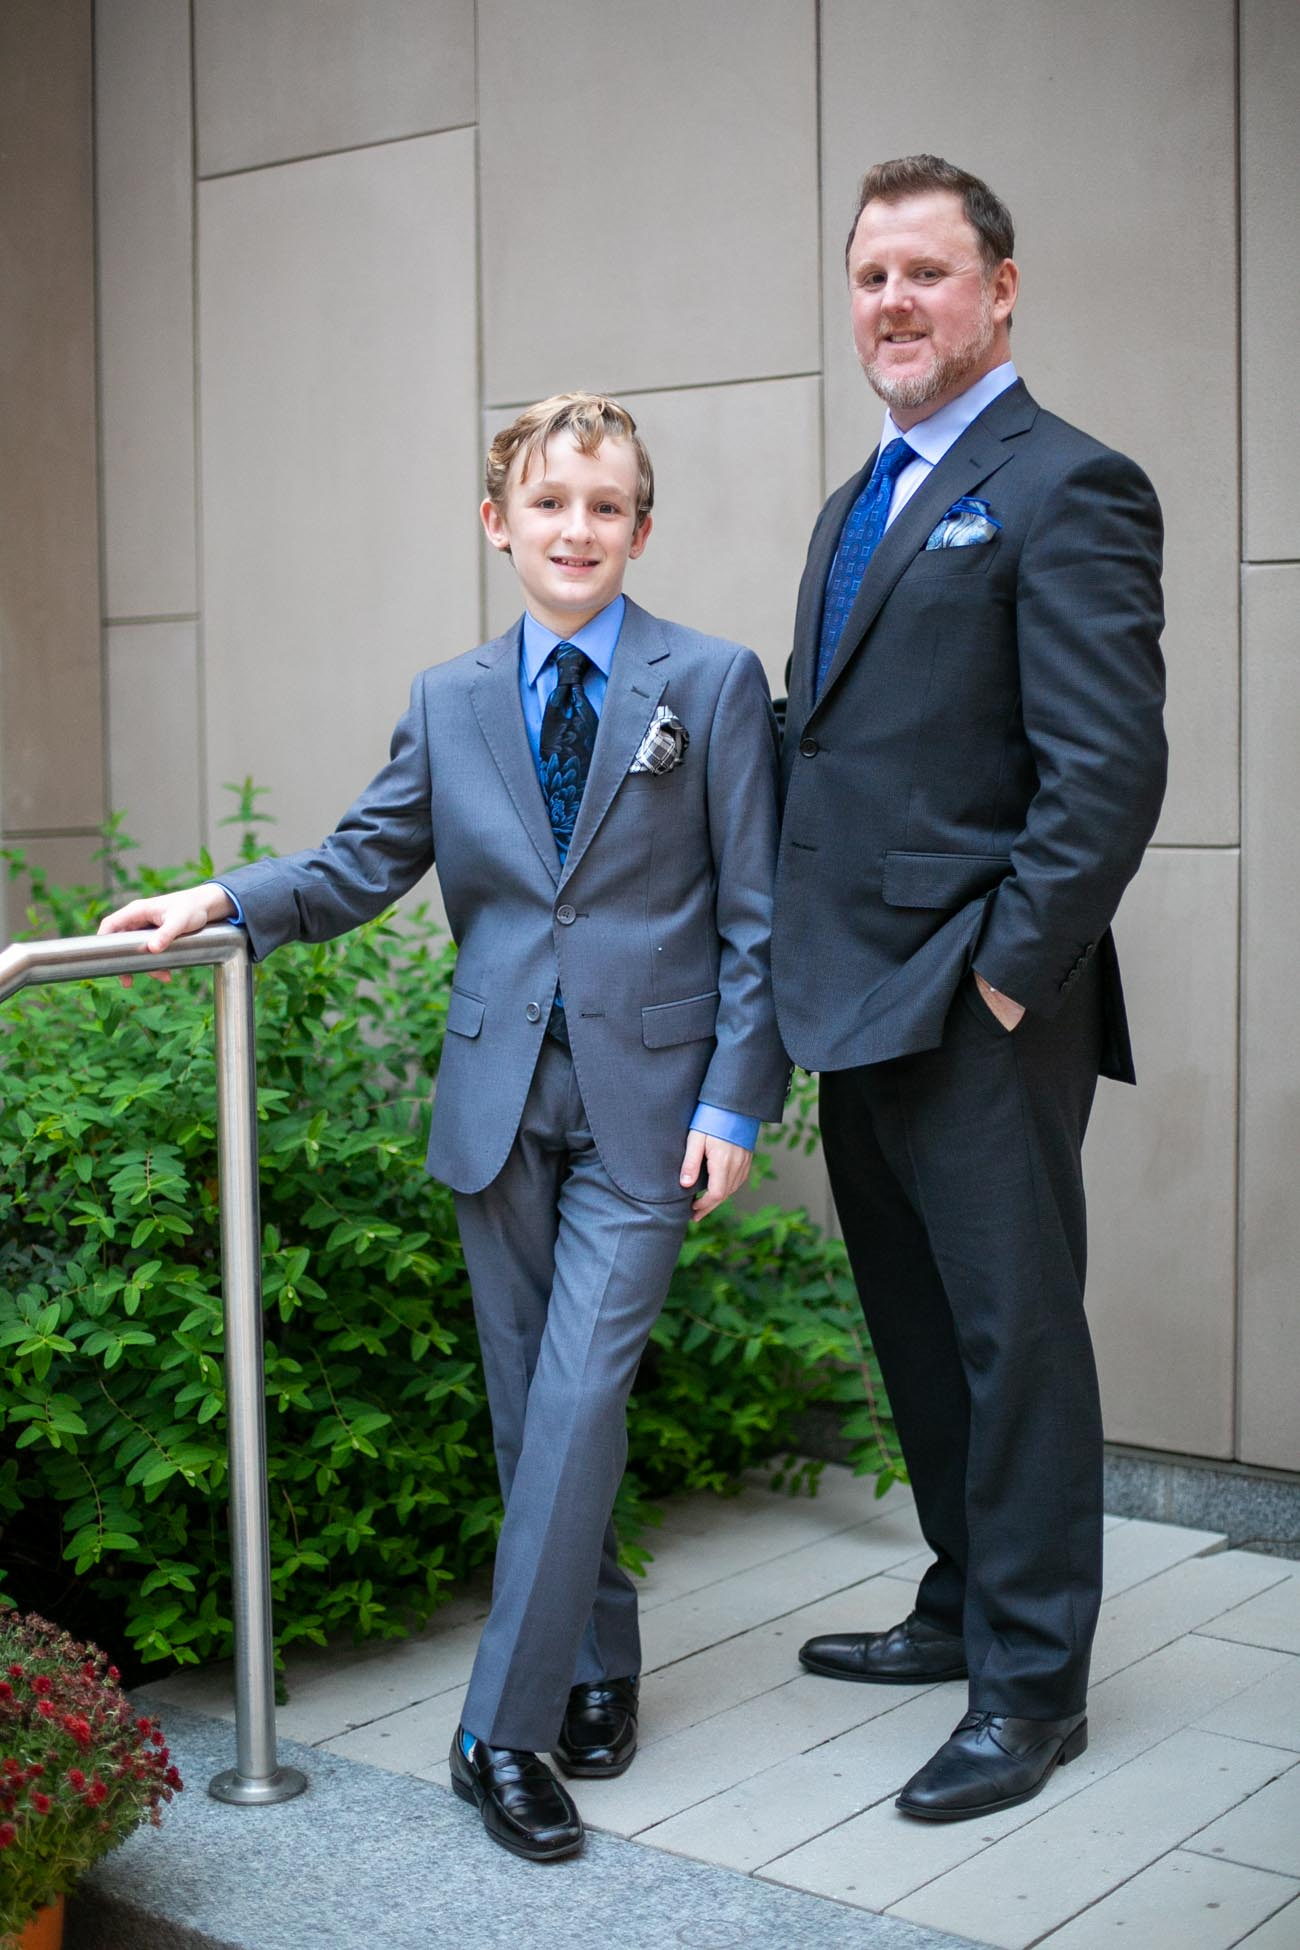 Davids Bar Mitzvah Preview-36.jpg